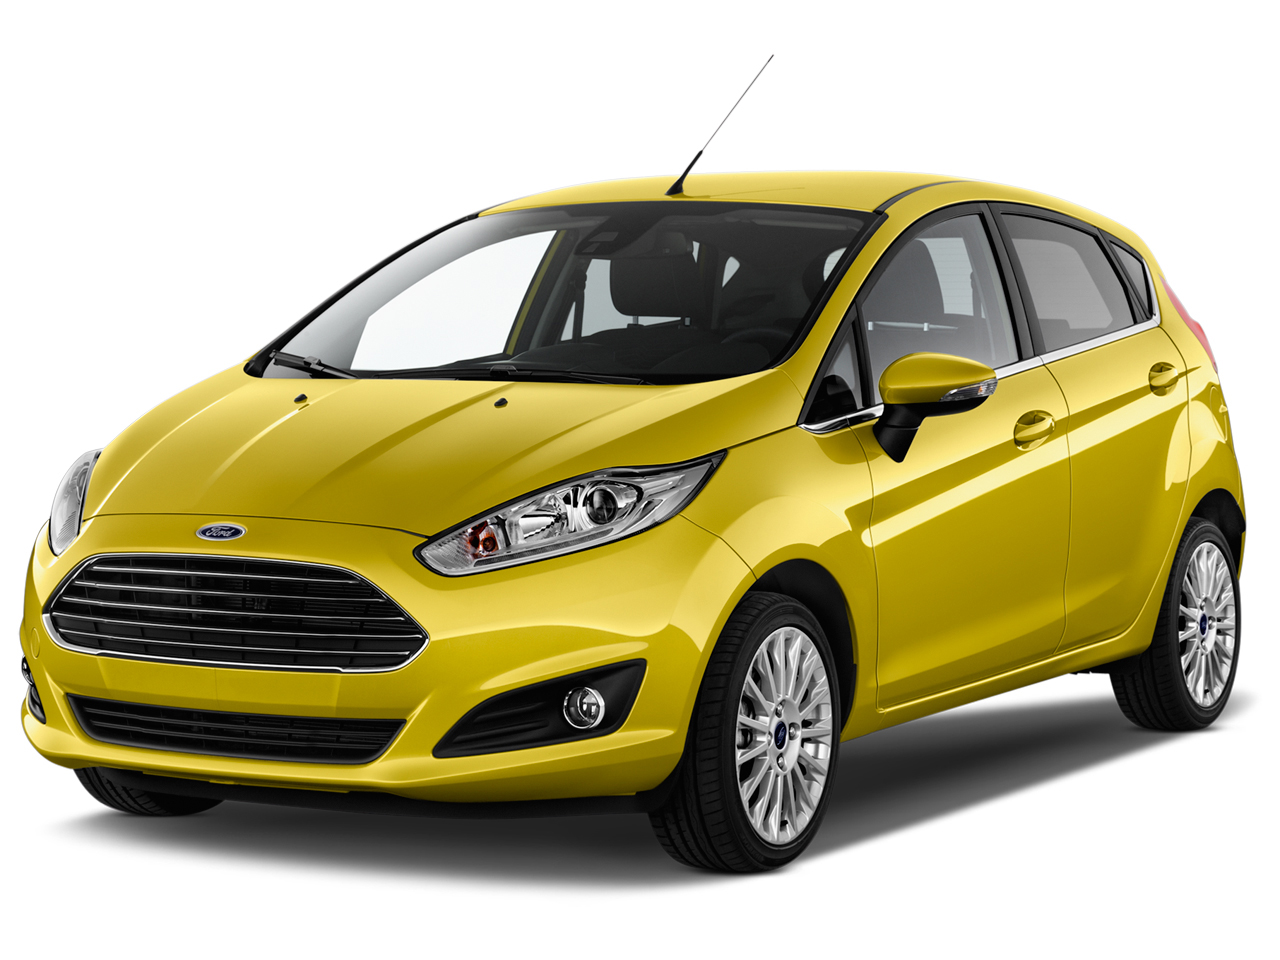 ford fiesta vs hyundai accent compare cars. Black Bedroom Furniture Sets. Home Design Ideas